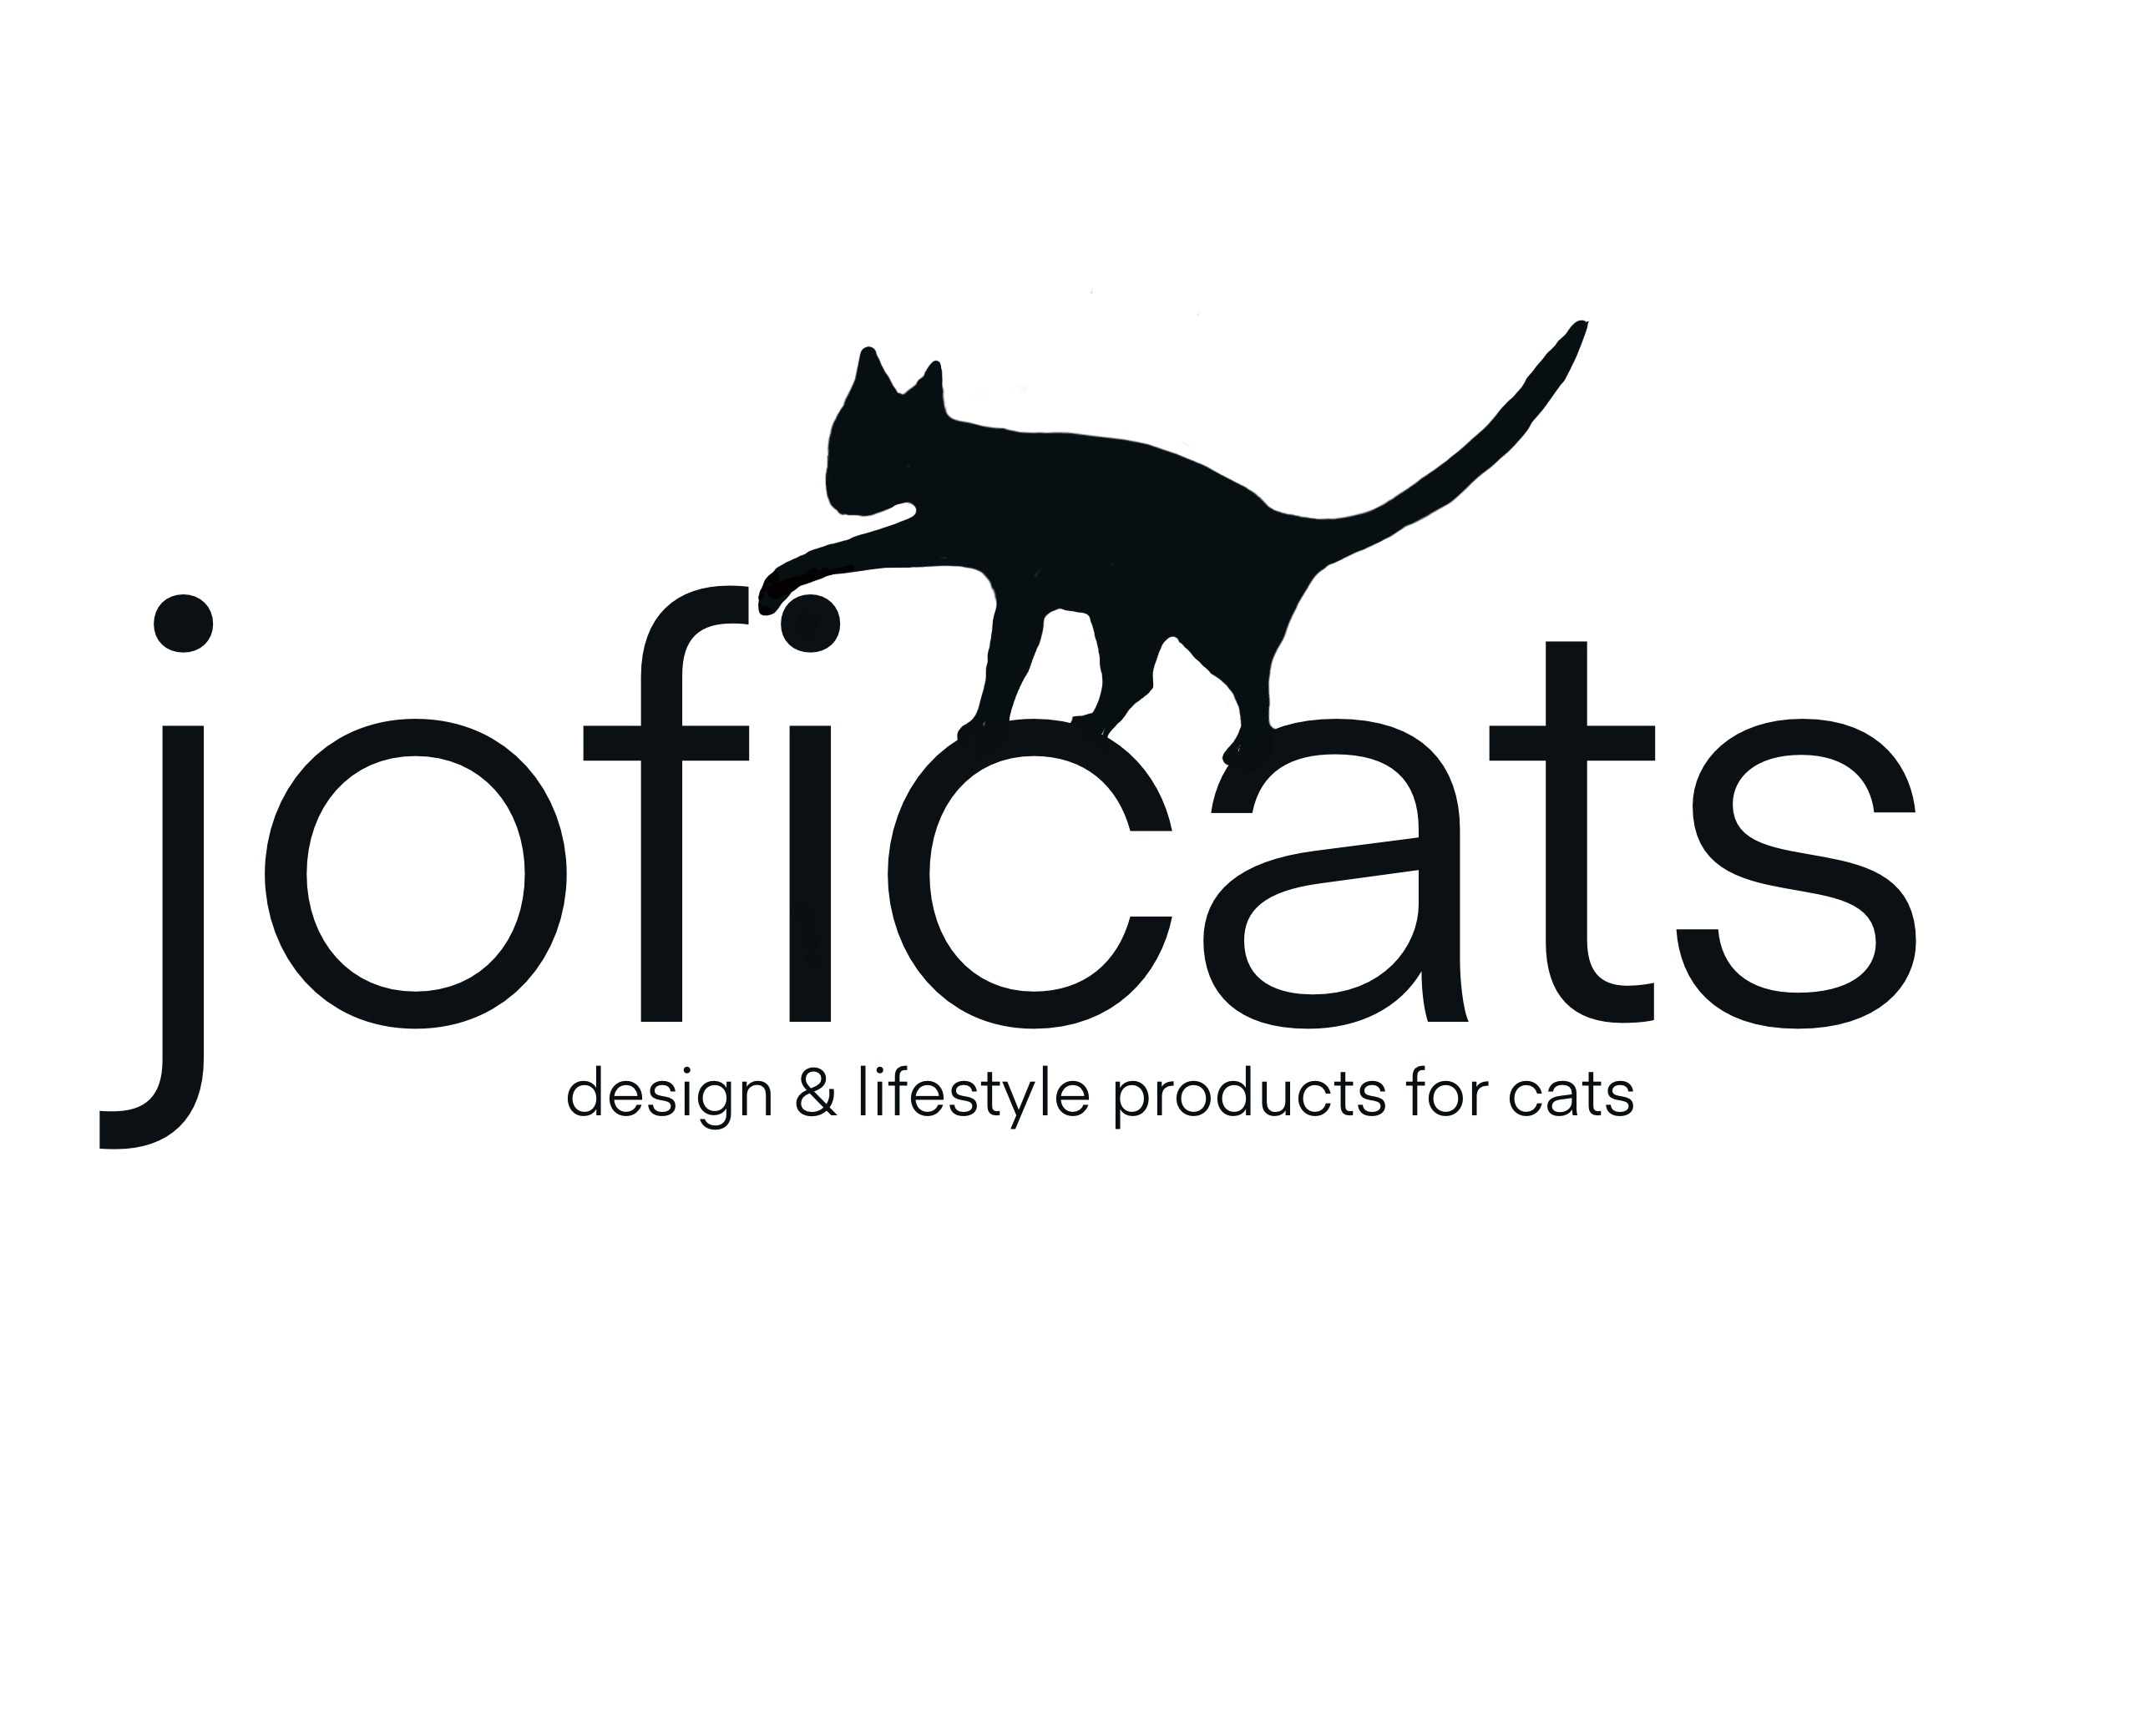 Joficats - design & lifestyle products for cats